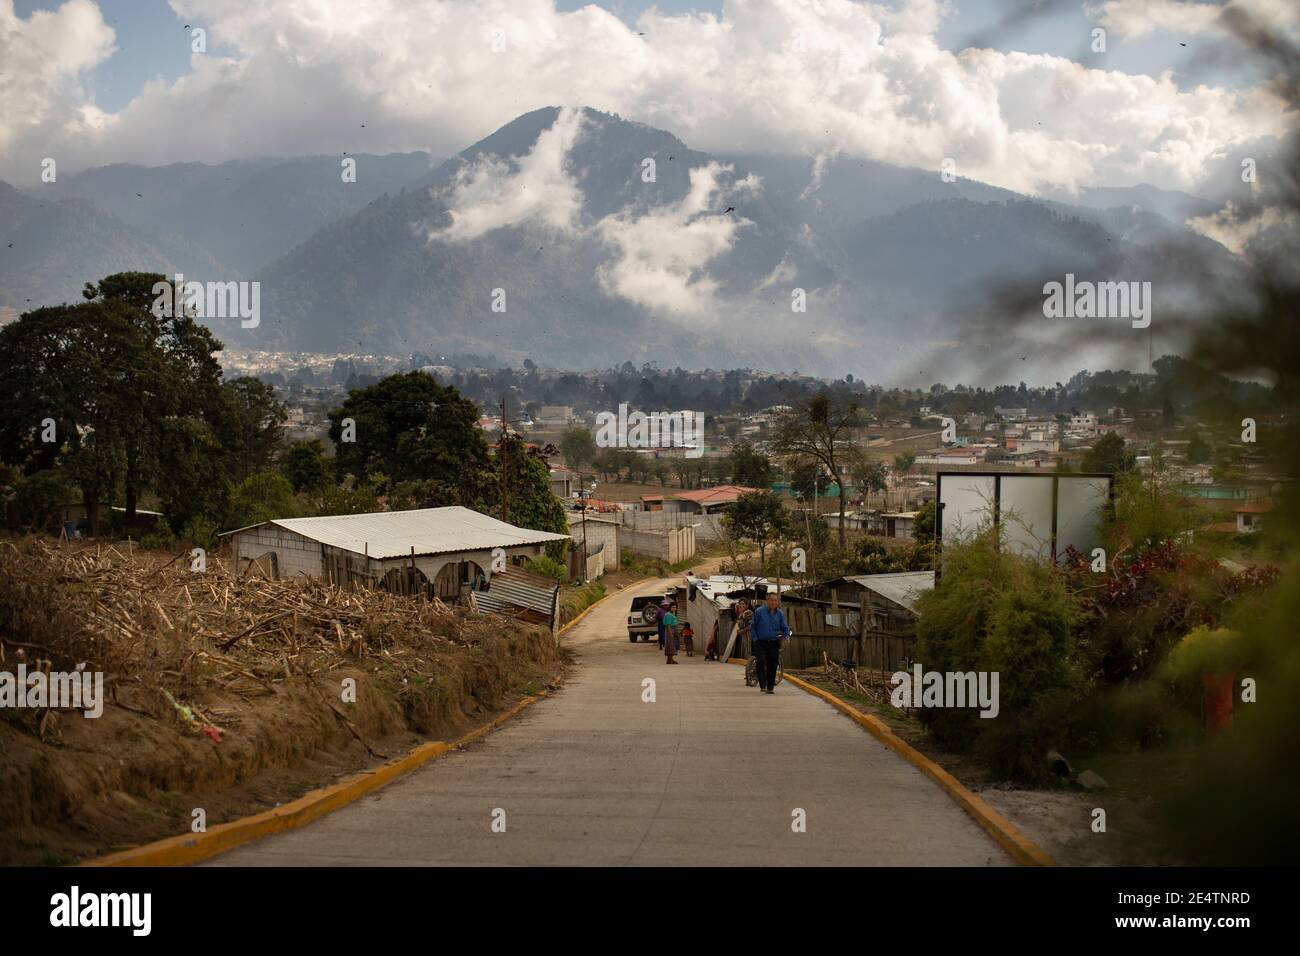 Village scenery with mountains in Cantel, Guatemala, Central America. Stock Photo